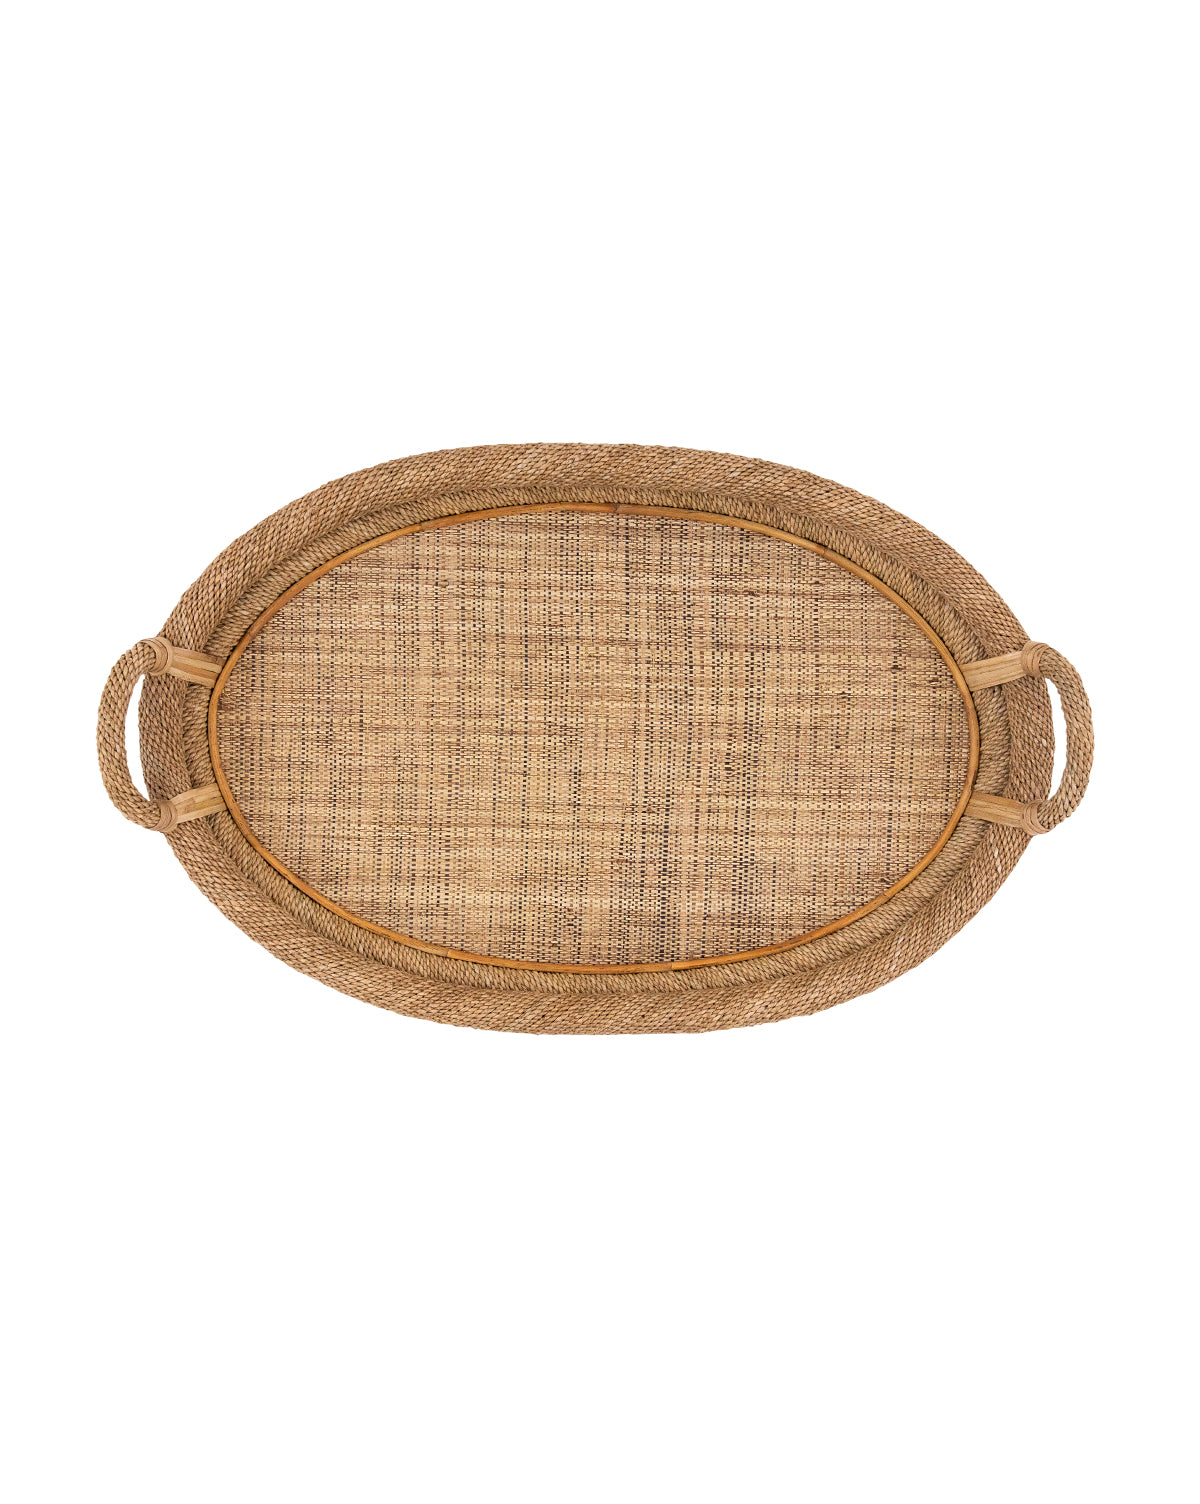 Cane & Rope Oval Tray